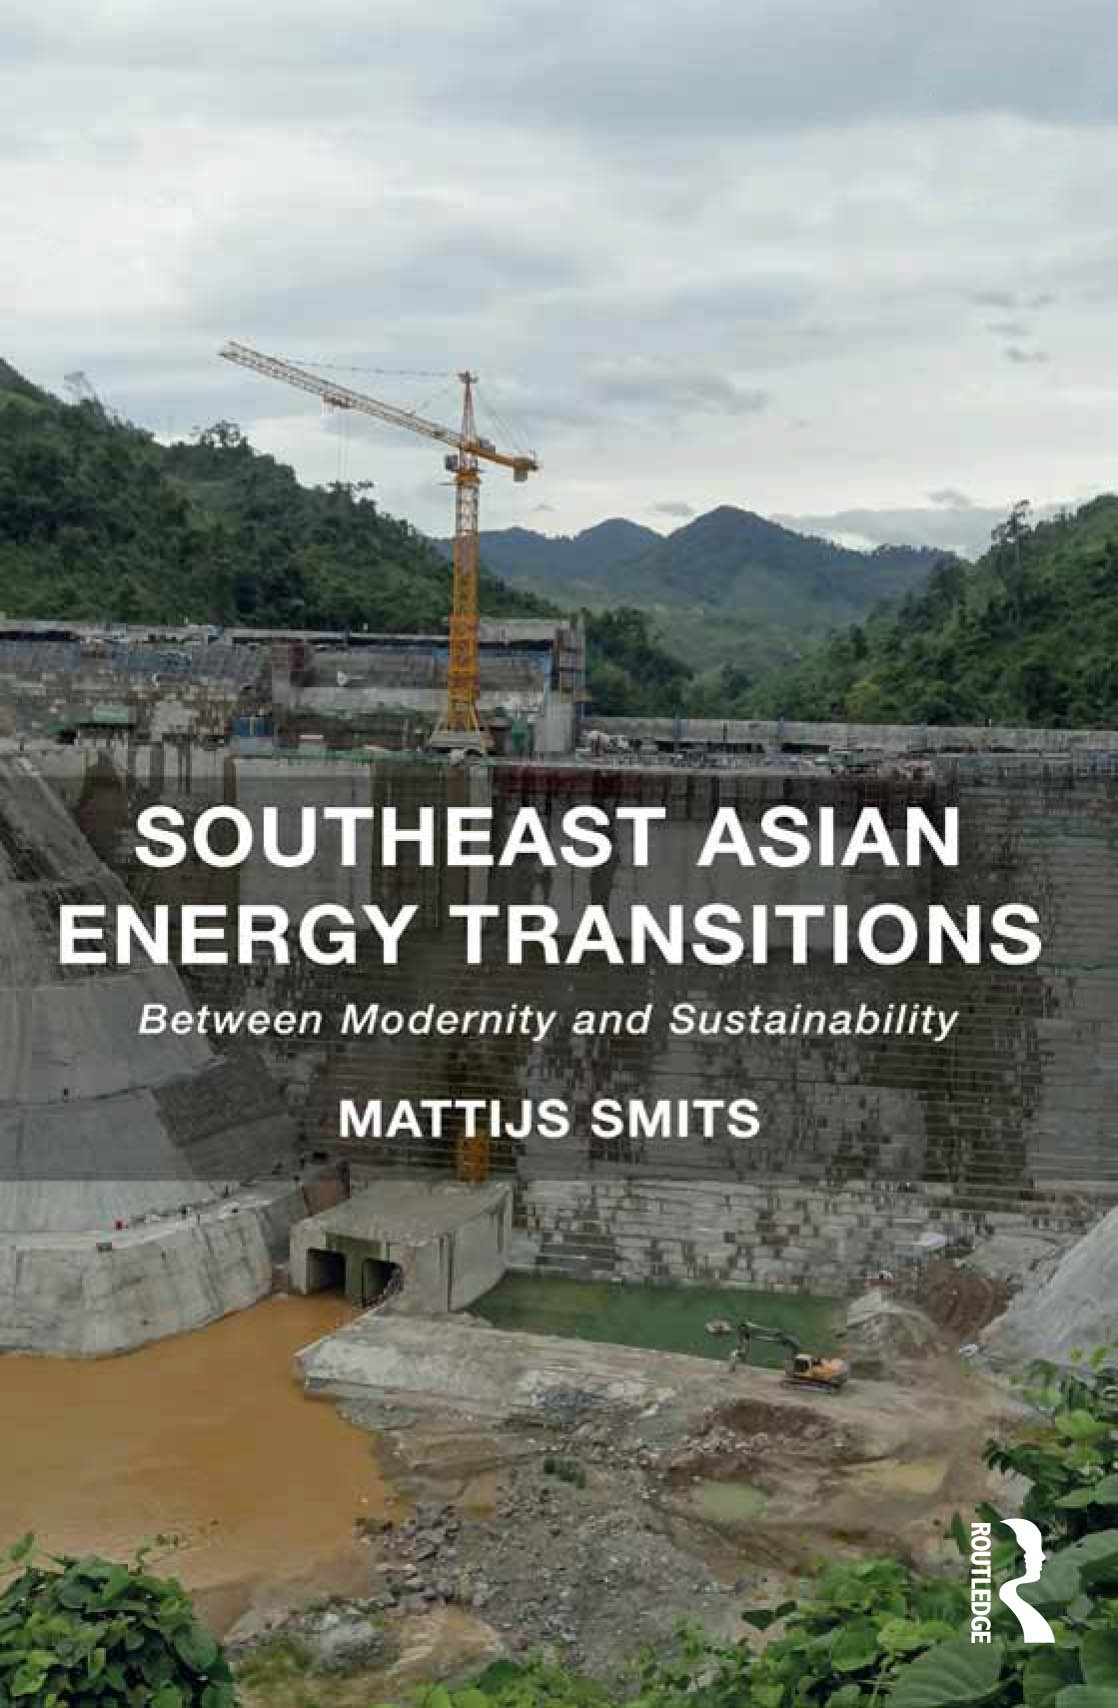 Southeast Asian Energy Transitions: Between Modernity and Sustainability